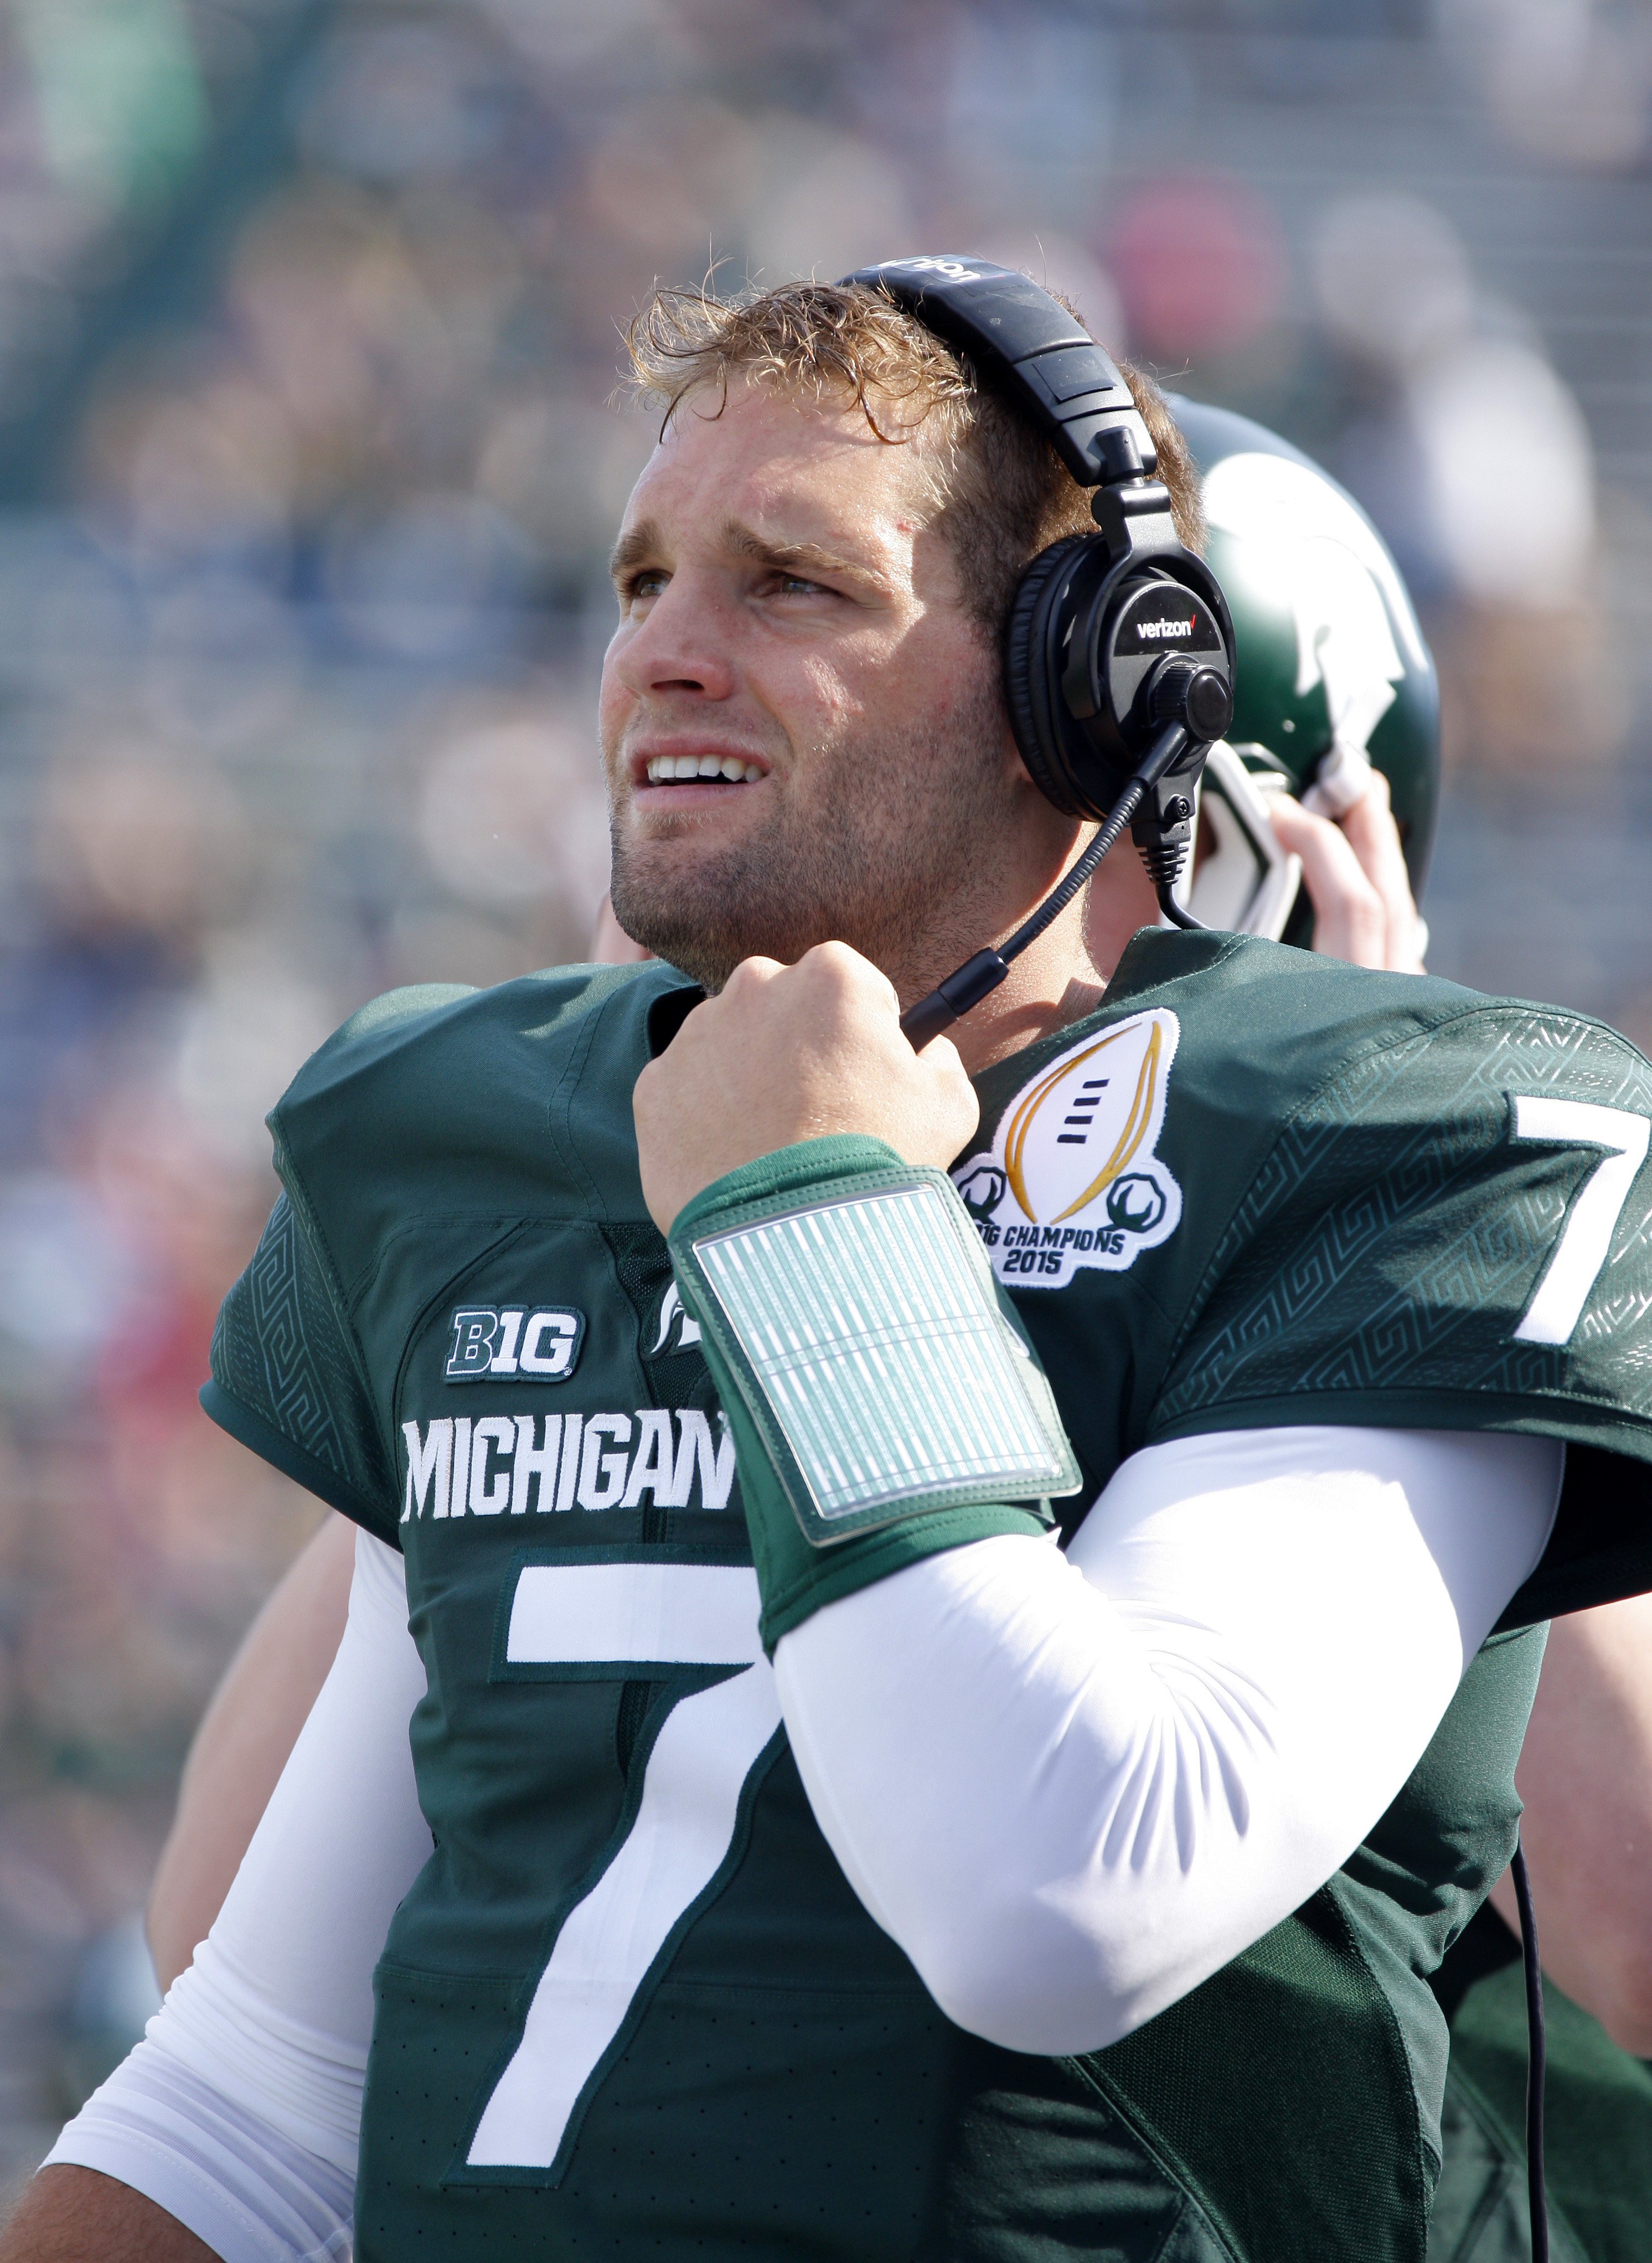 Michigan State green team quarterback Tyler O'Connor talks on a headset from the bench during the second half of an NCAA college football scrimmage, Saturday, April 23, 2016, in East Lansing, Mich. The white team won 14-11. (AP Photo/Al Goldis)